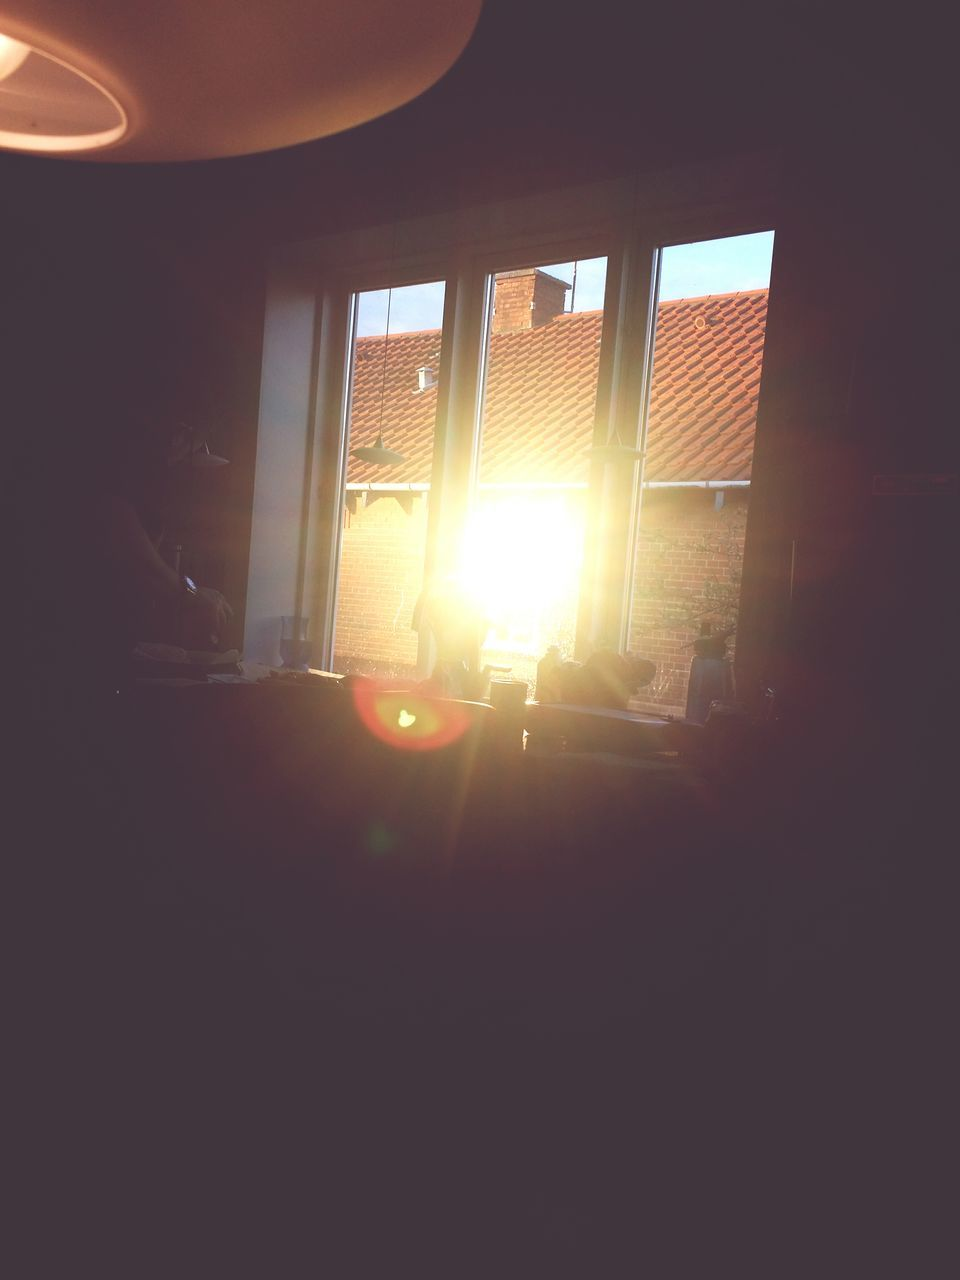 lens flare, sun, sunlight, window, sunbeam, sunset, indoors, silhouette, built structure, real people, illuminated, architecture, day, sky